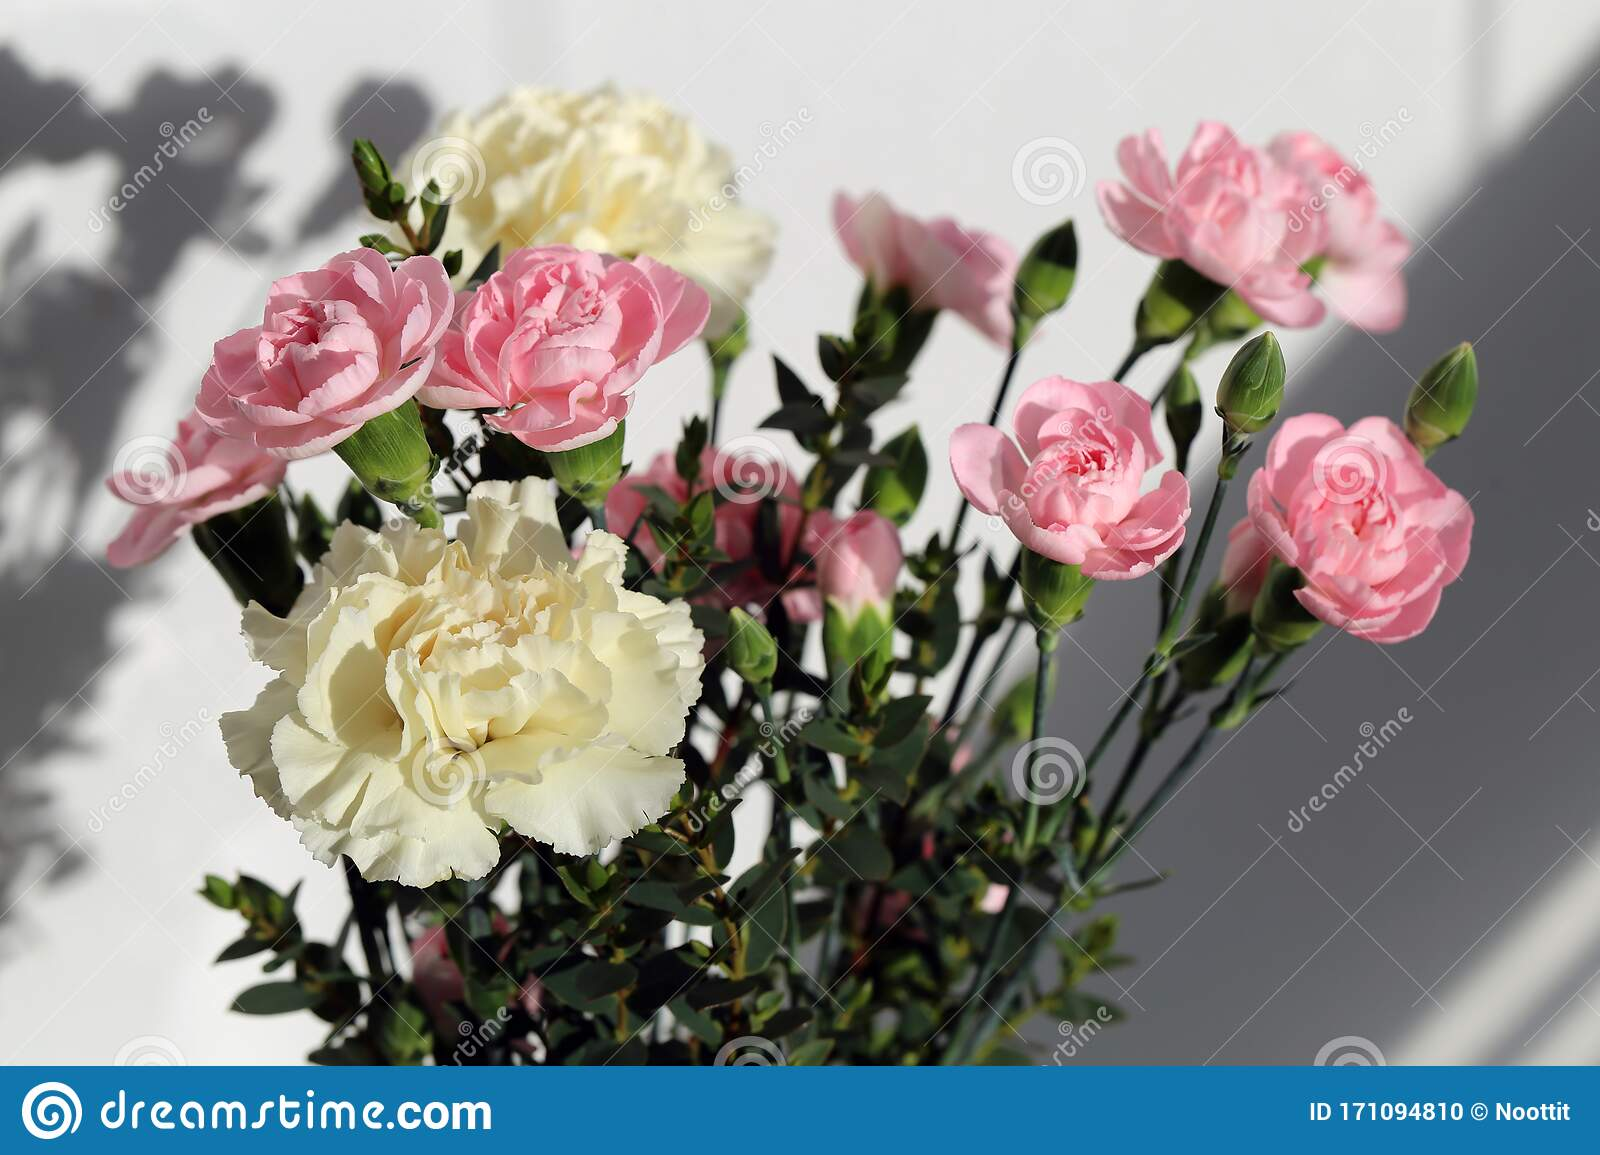 Bouquet Of Cute White And Pastel Pink Dianthus Chrysanthemum And Rose Flowers Stock Photo Image Of Green Flowers 171094810